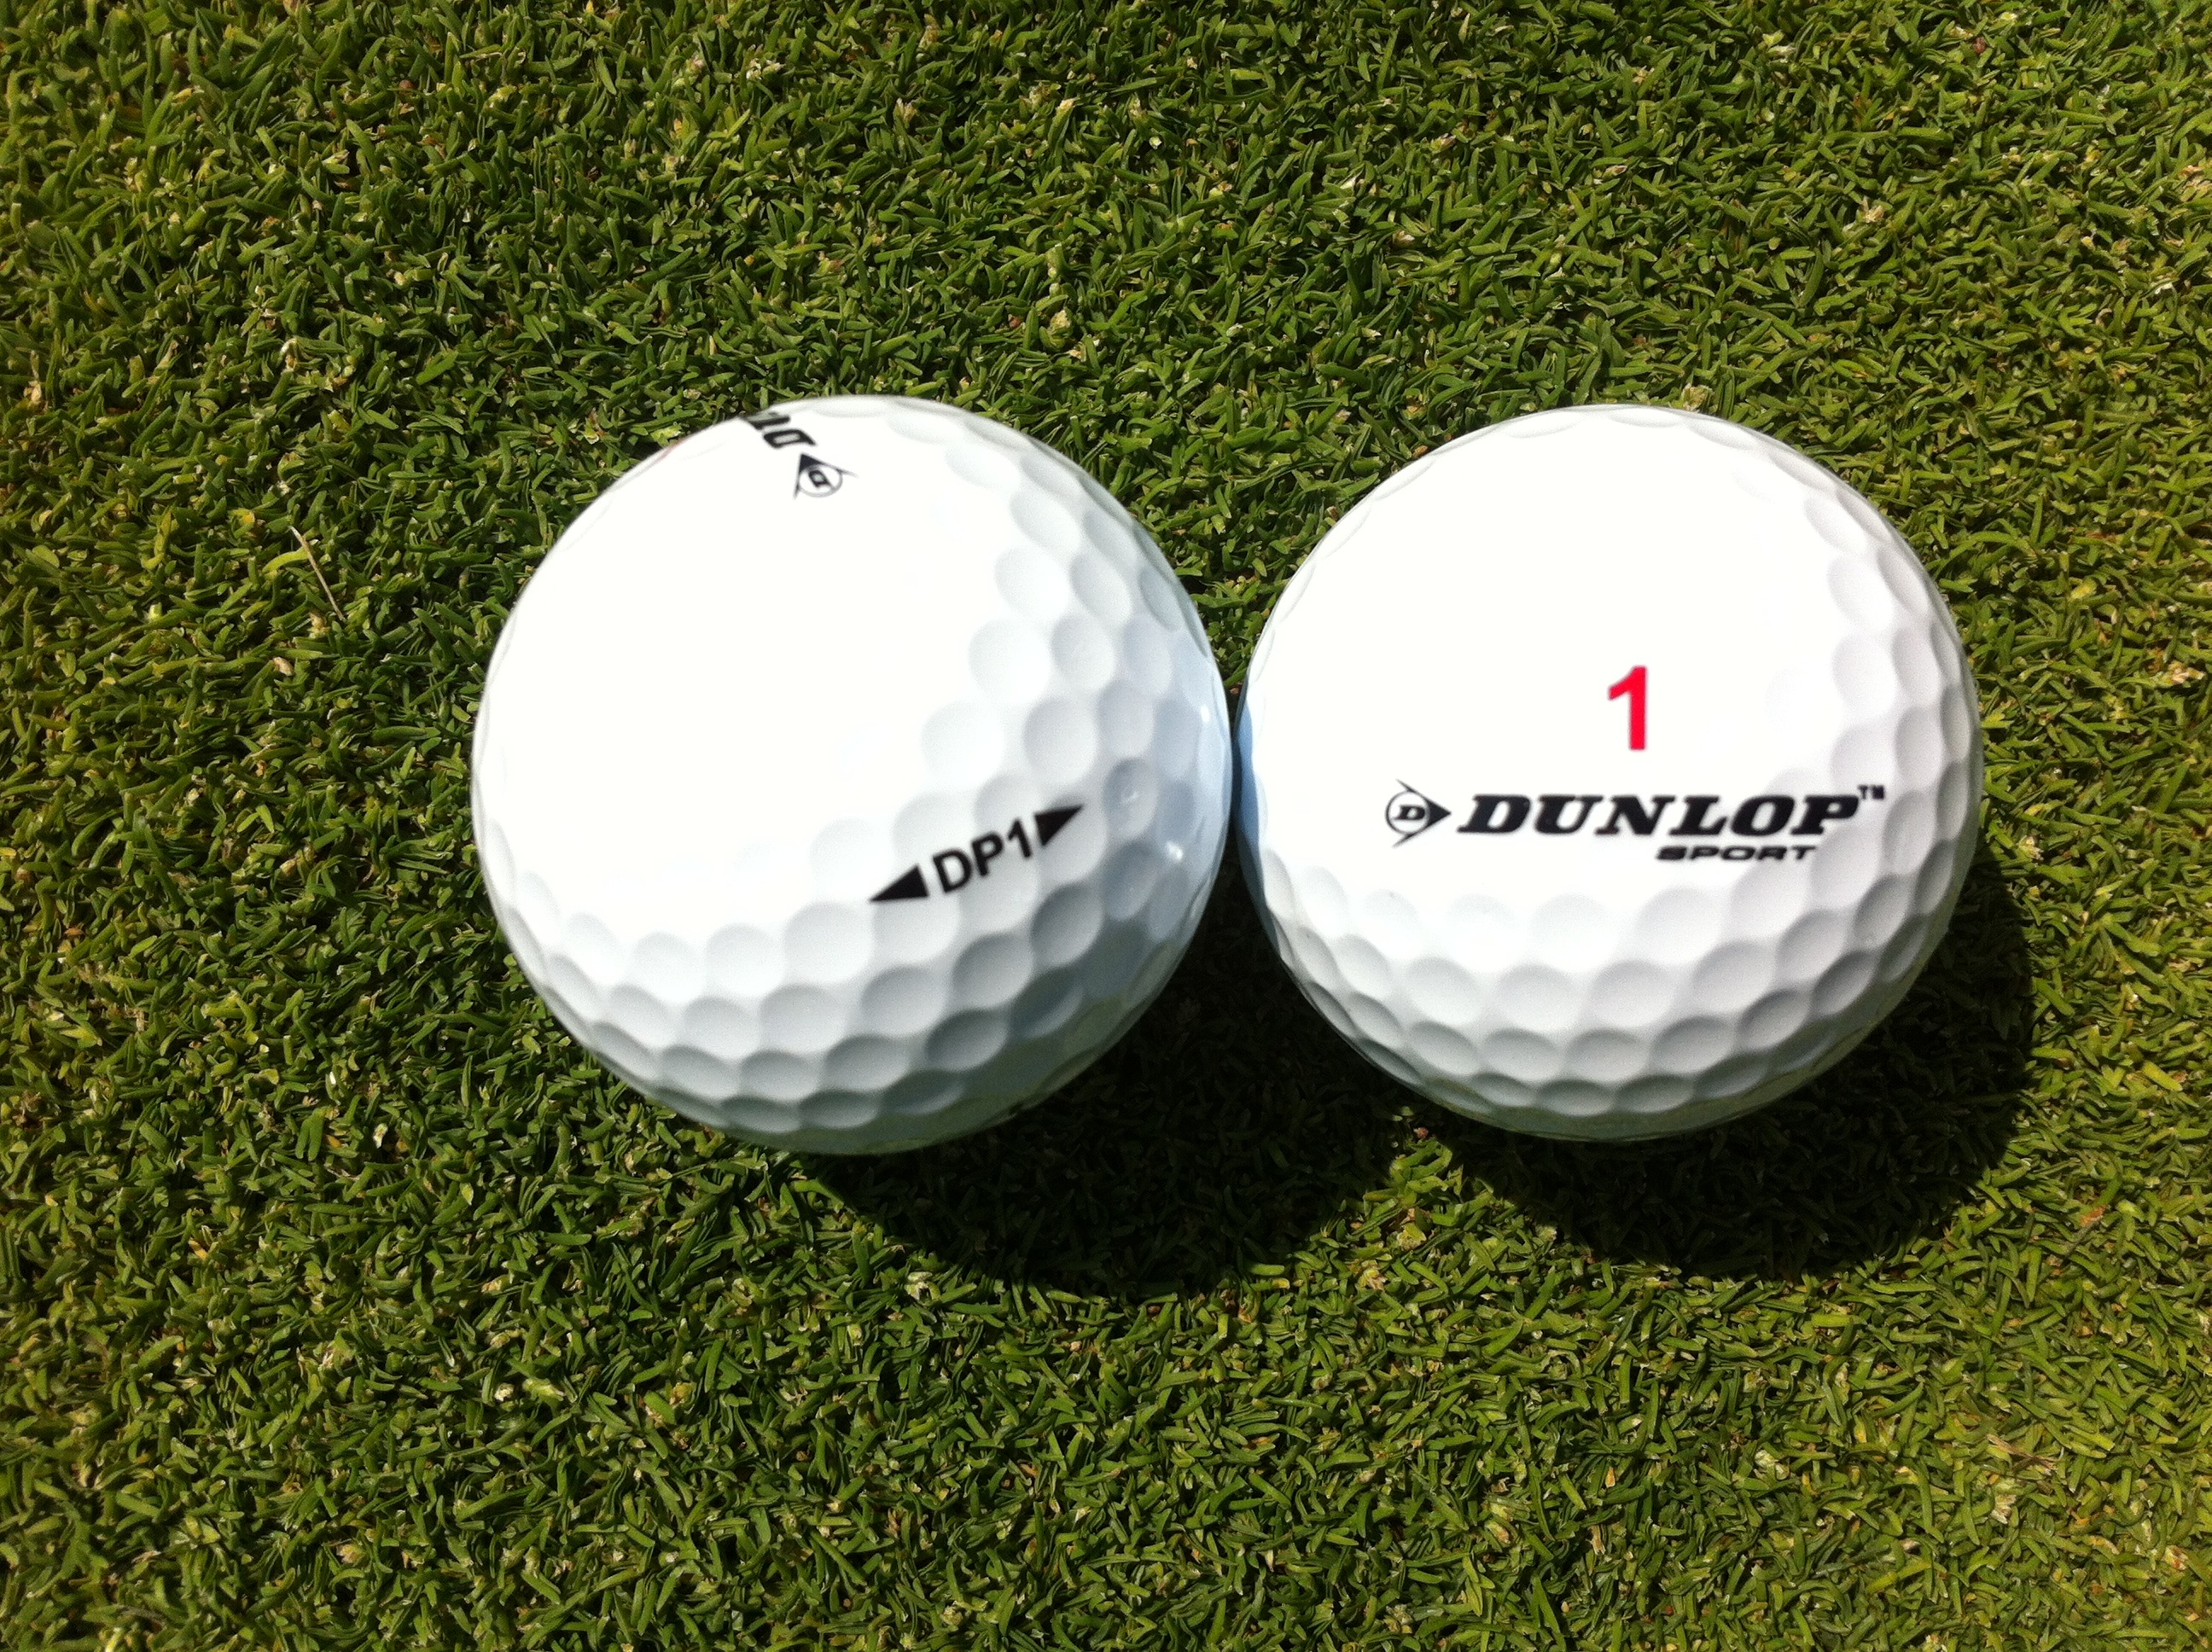 Golf Ball Review: Dunlop DP1 Golf Ball Review Golf Balls